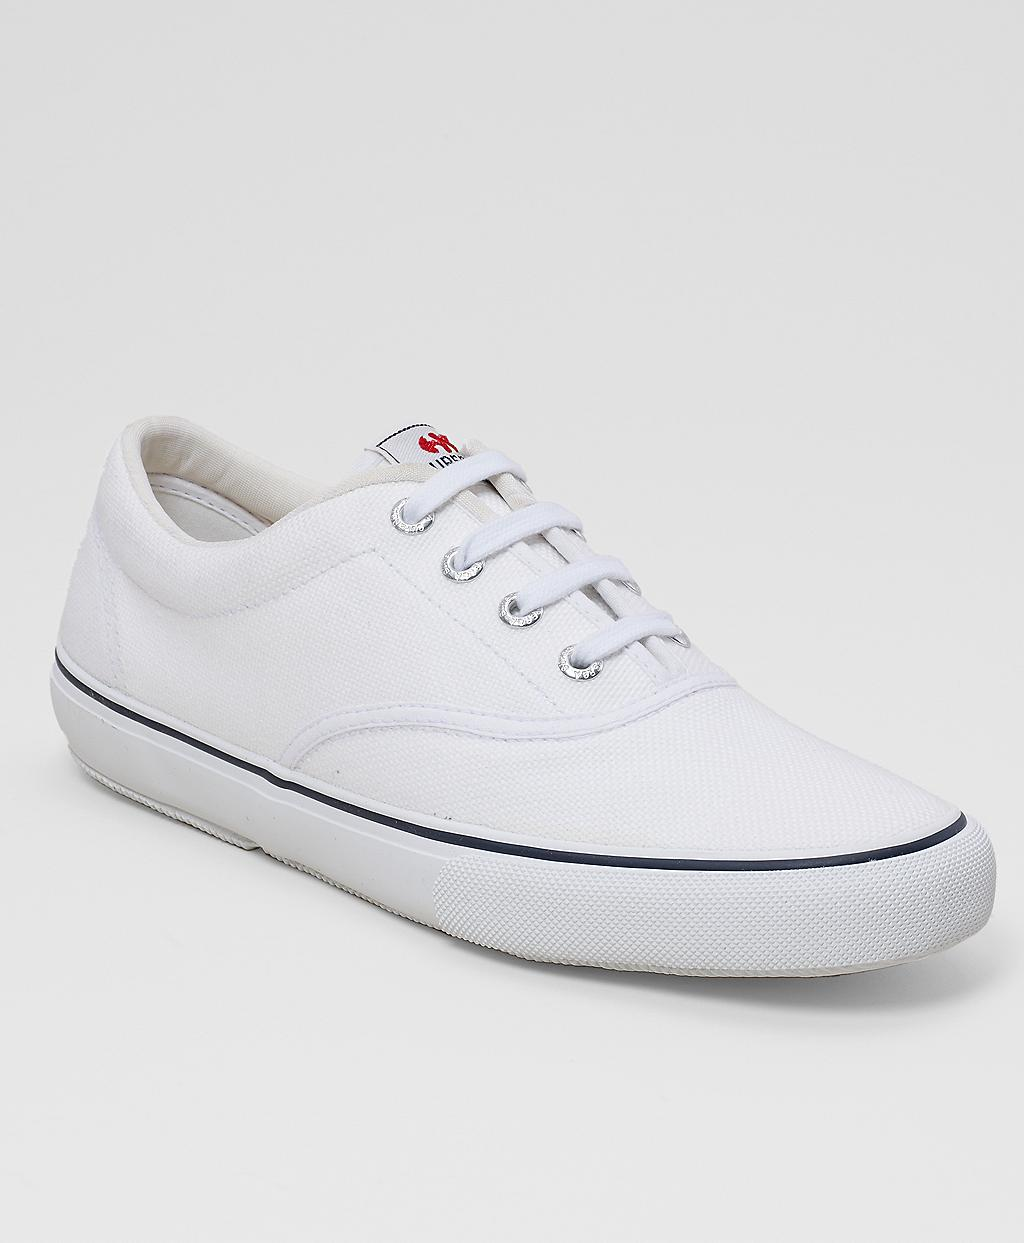 ddd3c8041d97f Lyst - Brooks Brothers Superga Exclusive Canvas Sneakers in White